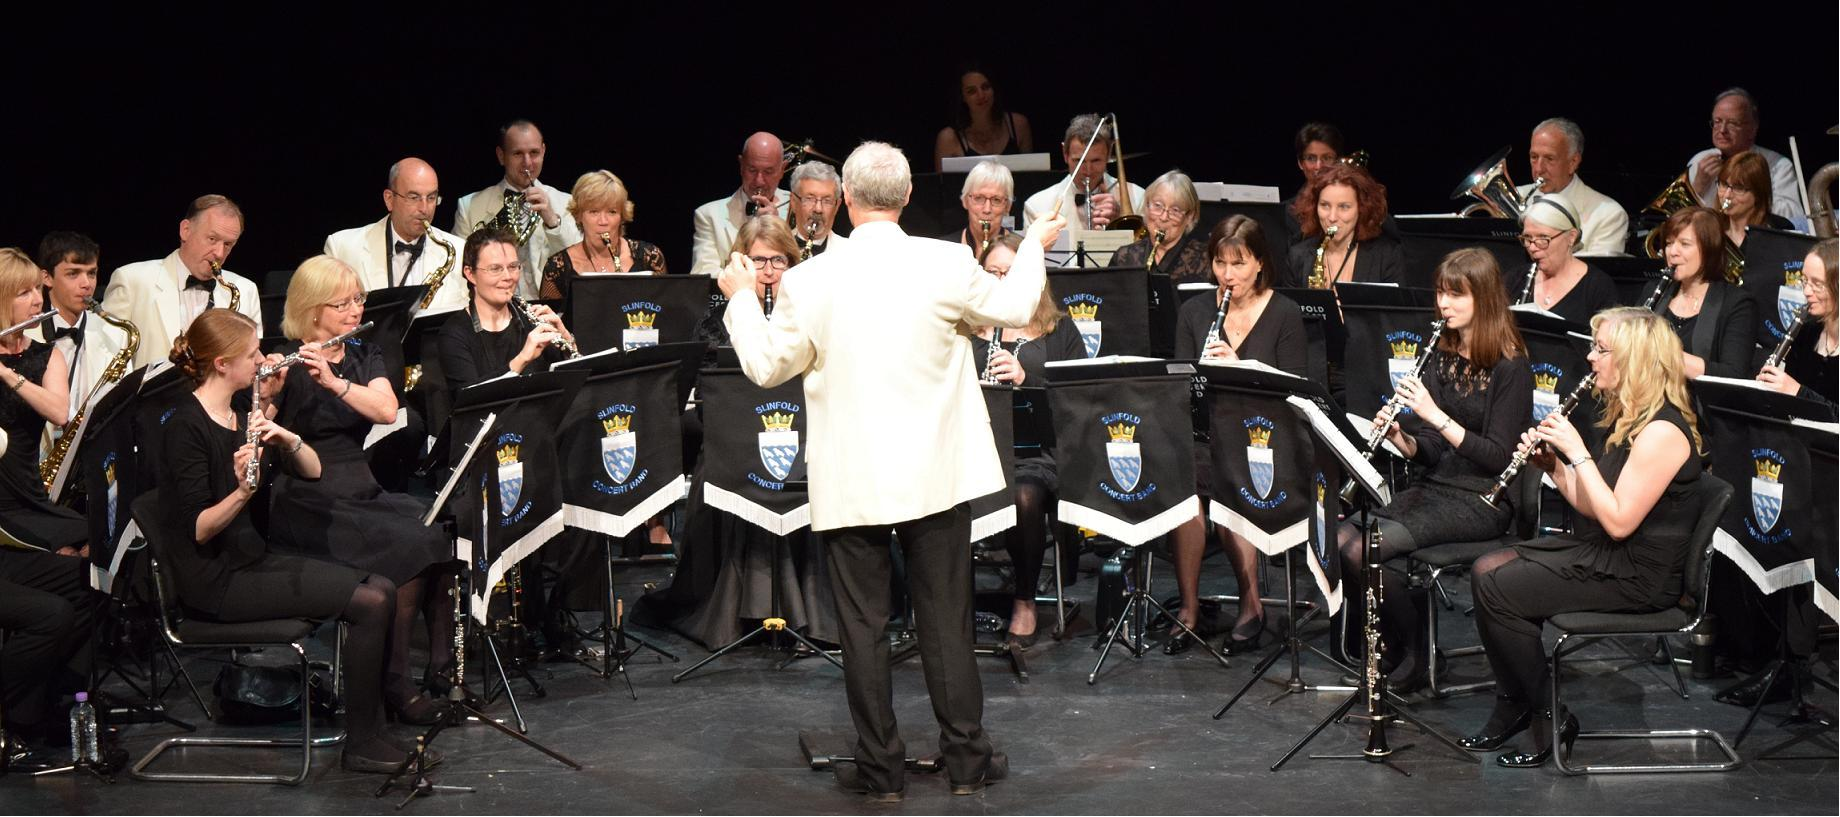 Slinfold Concert Band in concert at The Capitol, Horsham